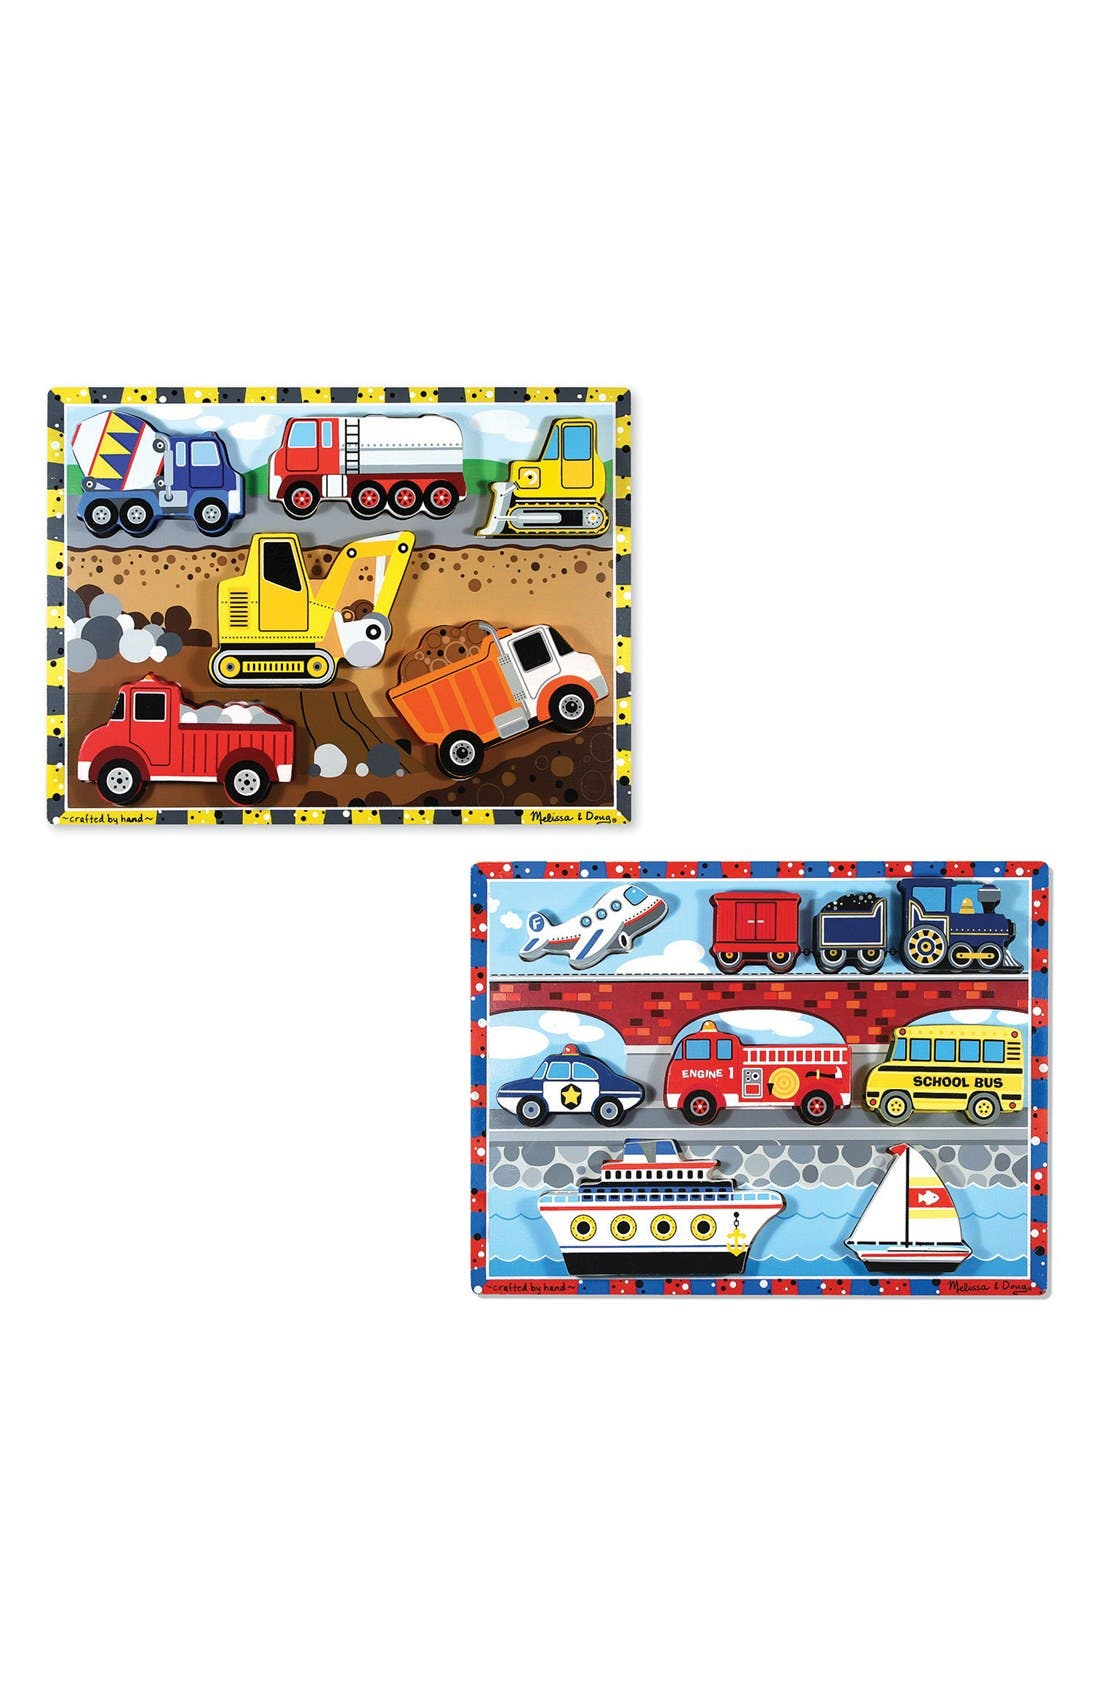 Alternate Image 1 Selected - Melissa & Doug Vehicle and Construction Puzzles (Set of 2)